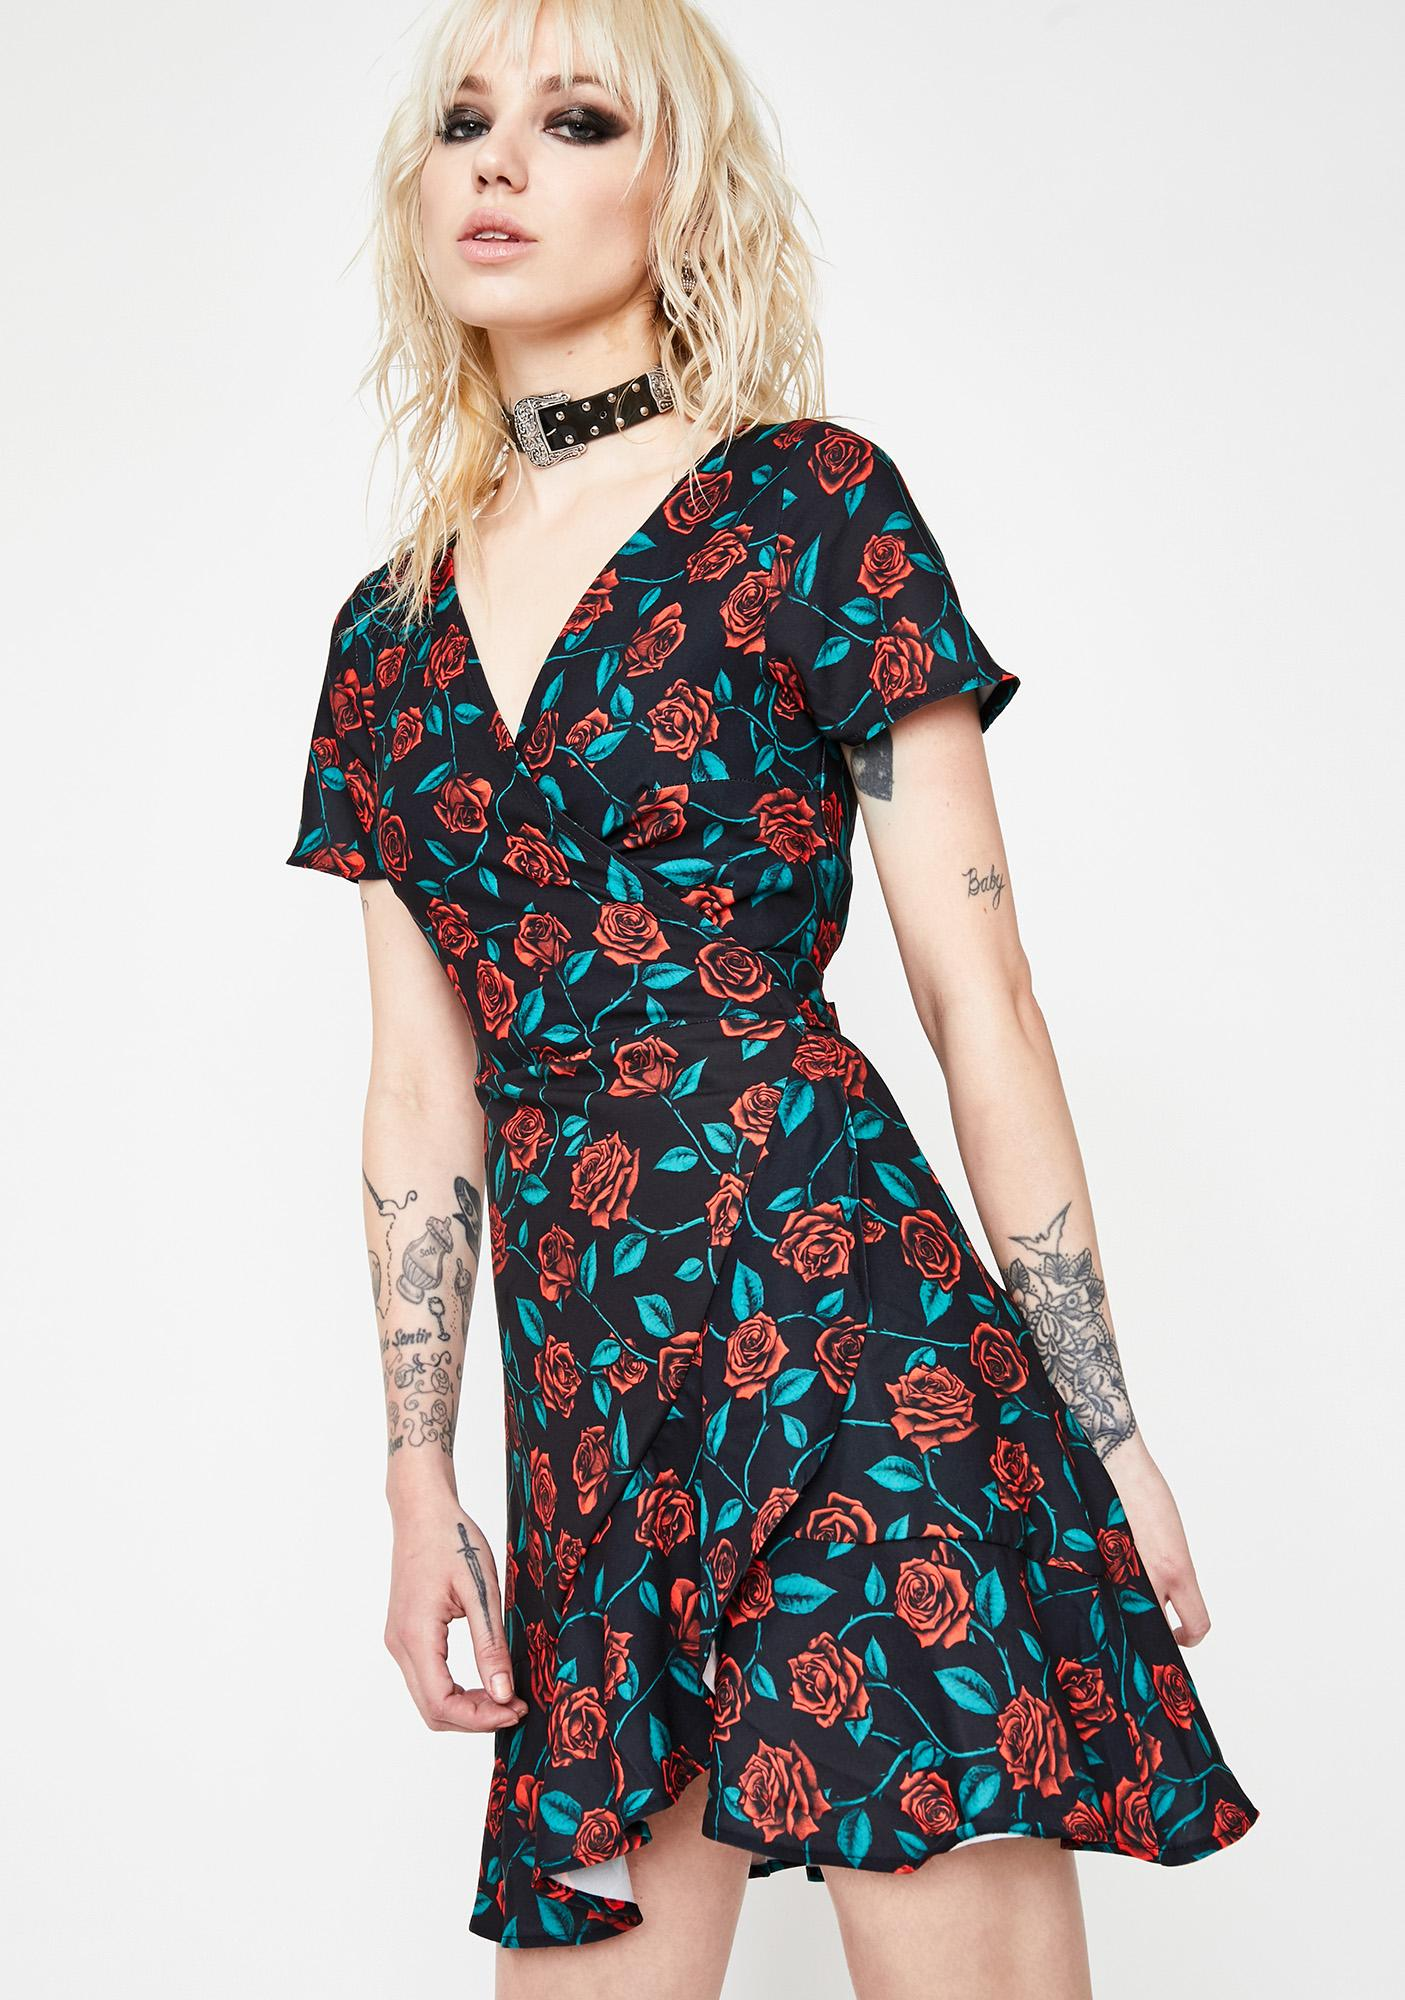 HOROSCOPEZ Love Empress Mesh Dress